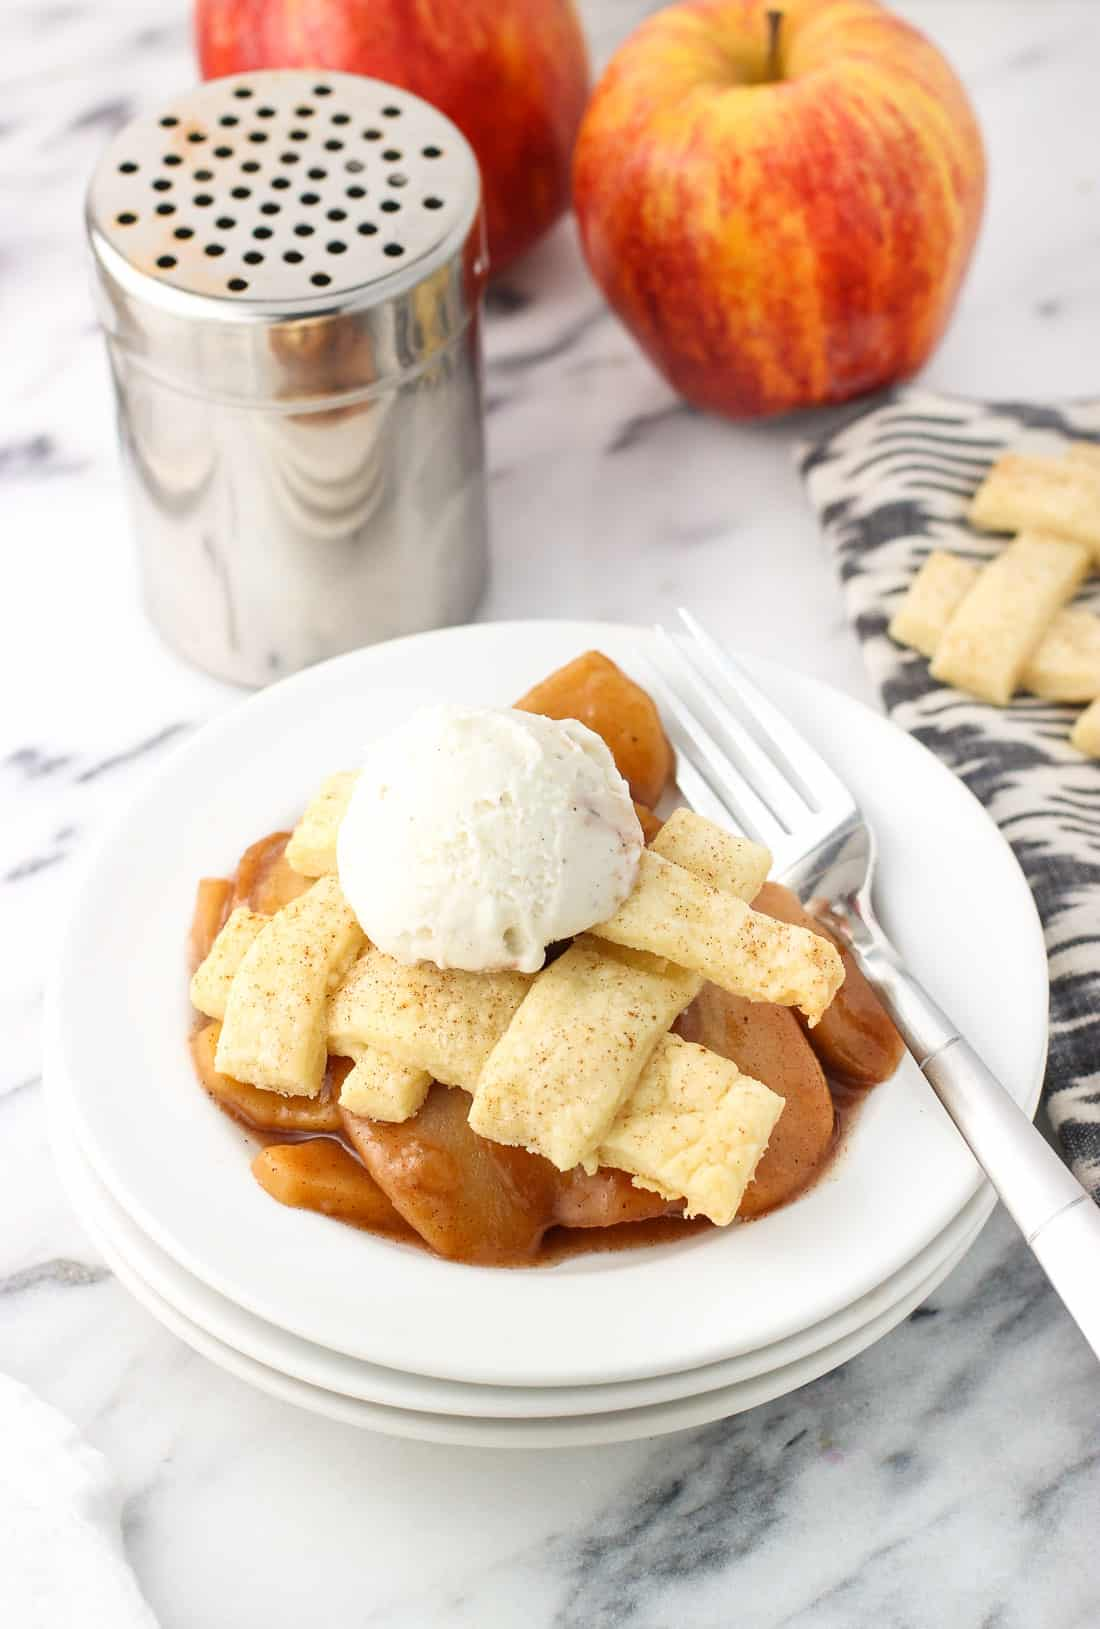 A slow cooker apple pie serving on a dessert plate with a fork and a small scoop of vanilla ice cream.